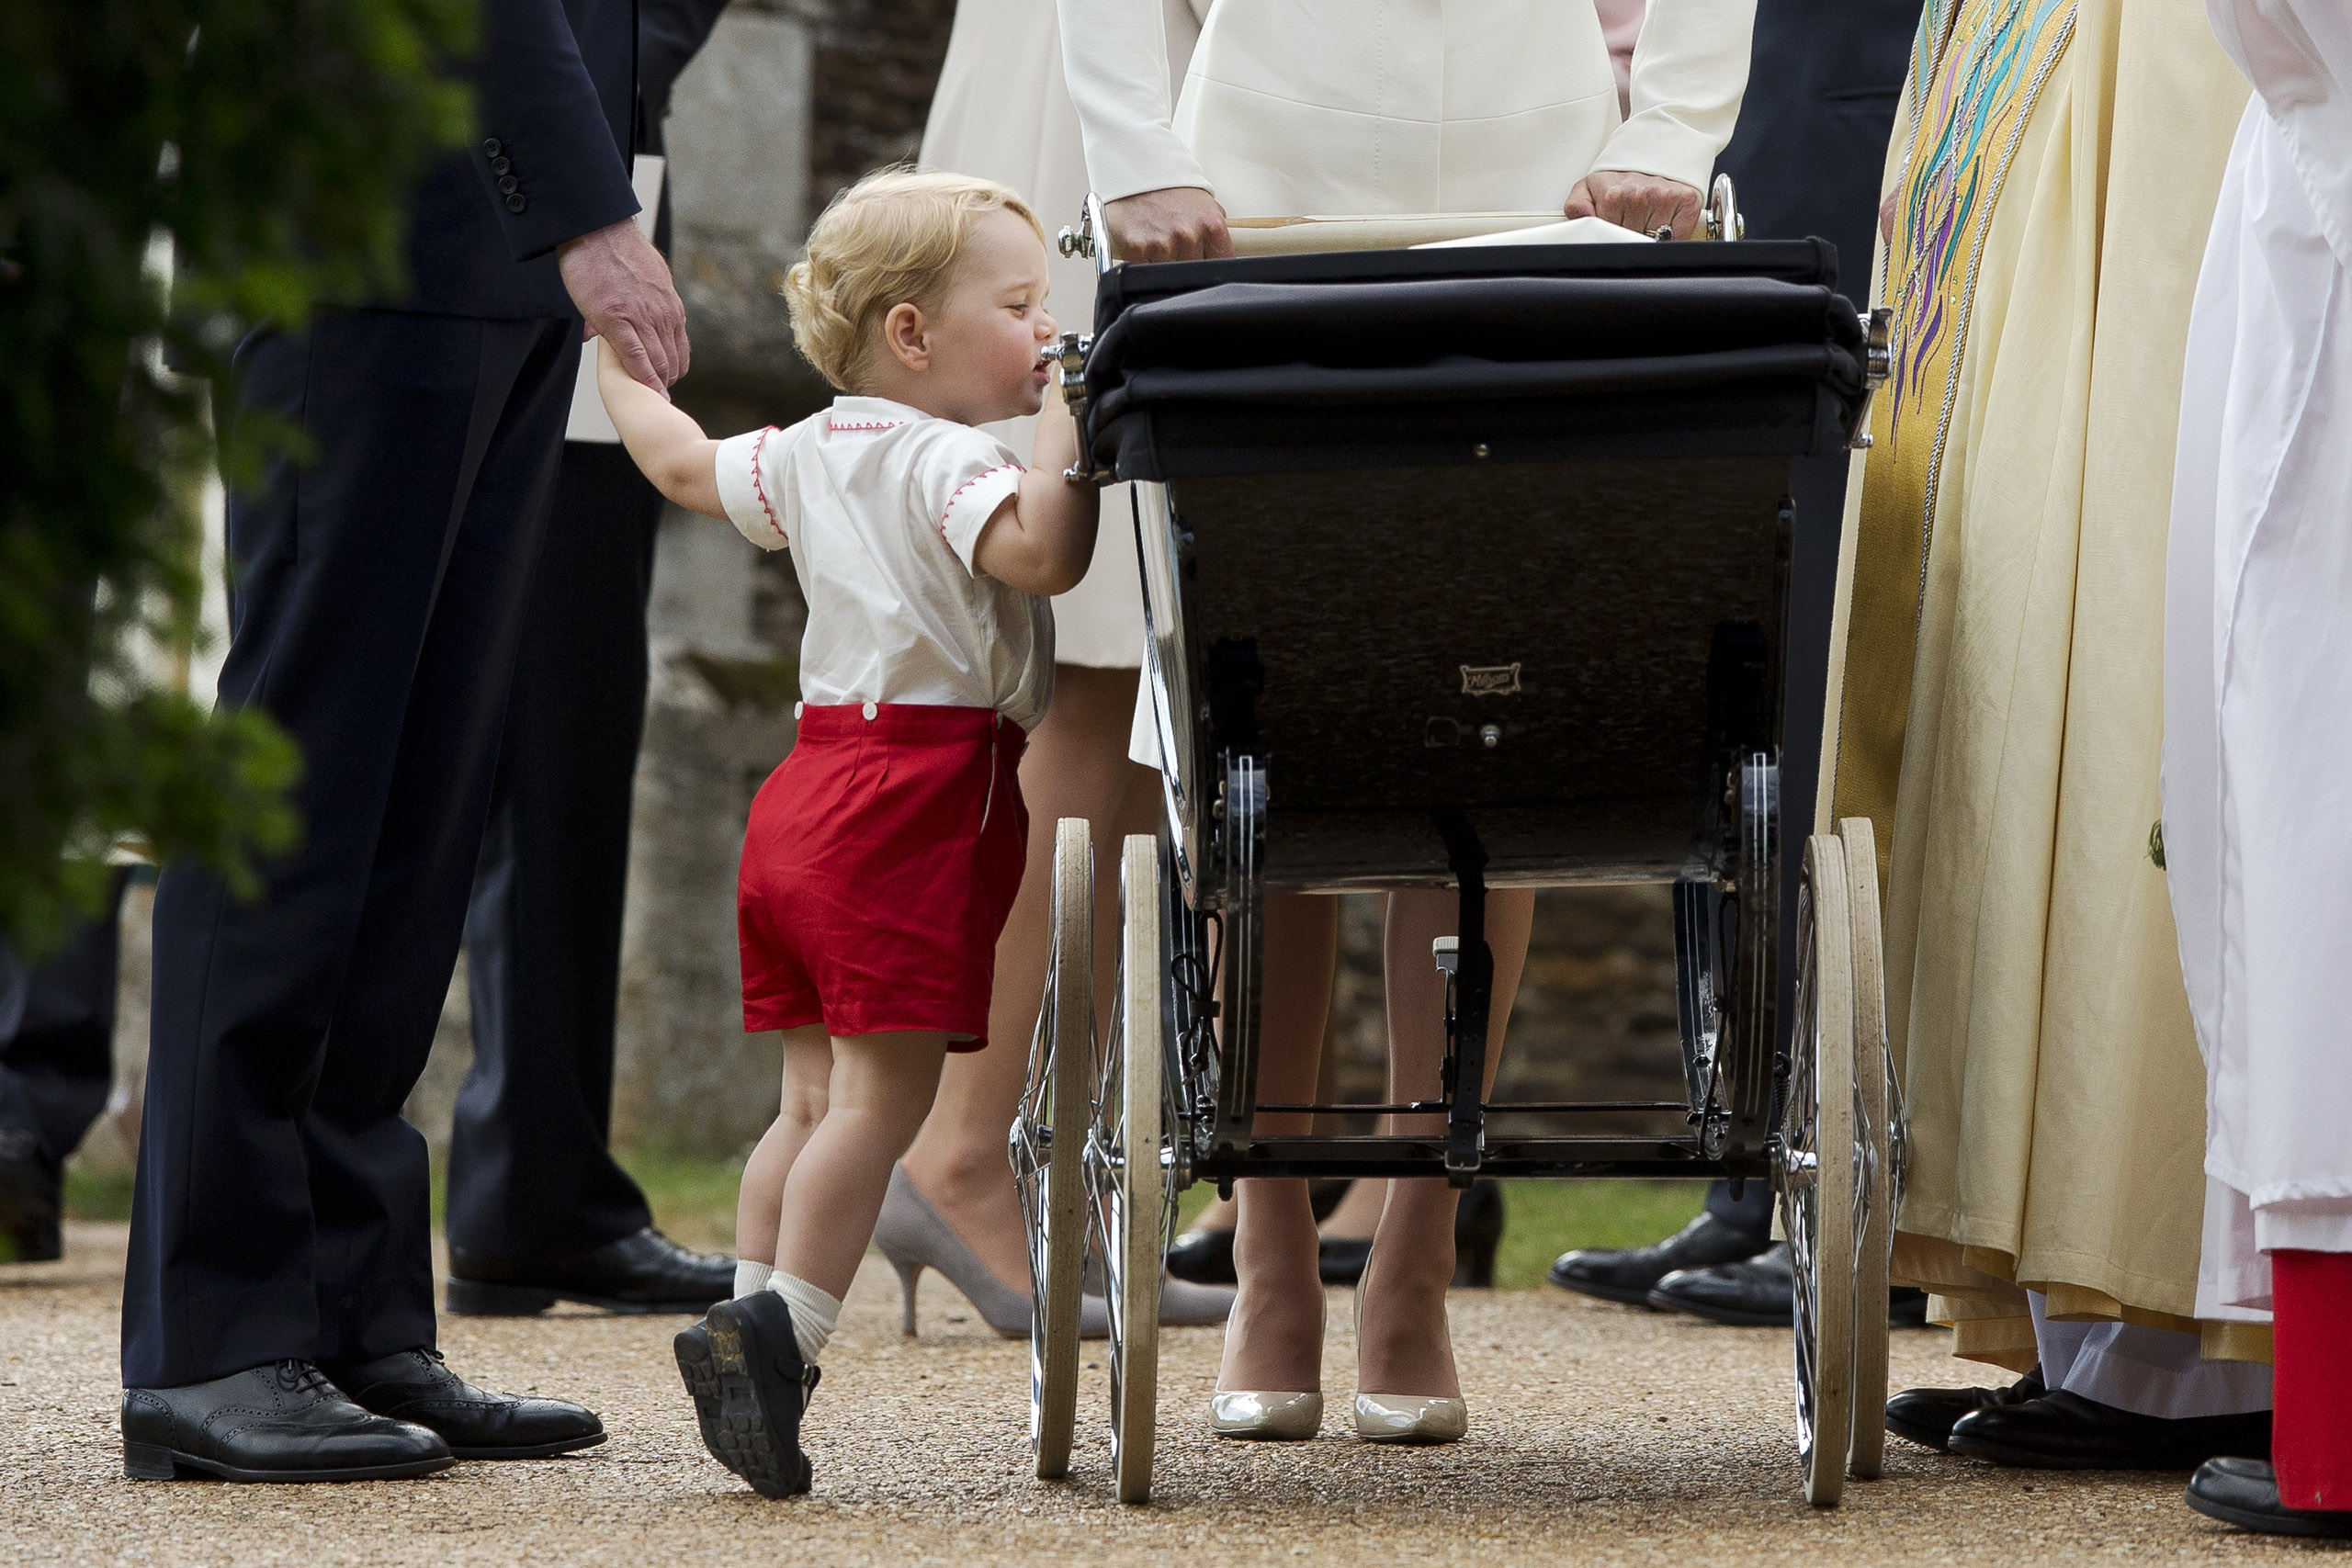 Catherine, Duchess of Cambridge and Prince William, Duke of Cambridge stand as Prince George of Cambridge looks into Princess Charlotte of Cambridge's pram as they leave the Church of St Mary Magdalene on the Sandringham Estate after the Christening of Princess Charlotte of Cambridge in King's Lynn, England on July 5, 2015.